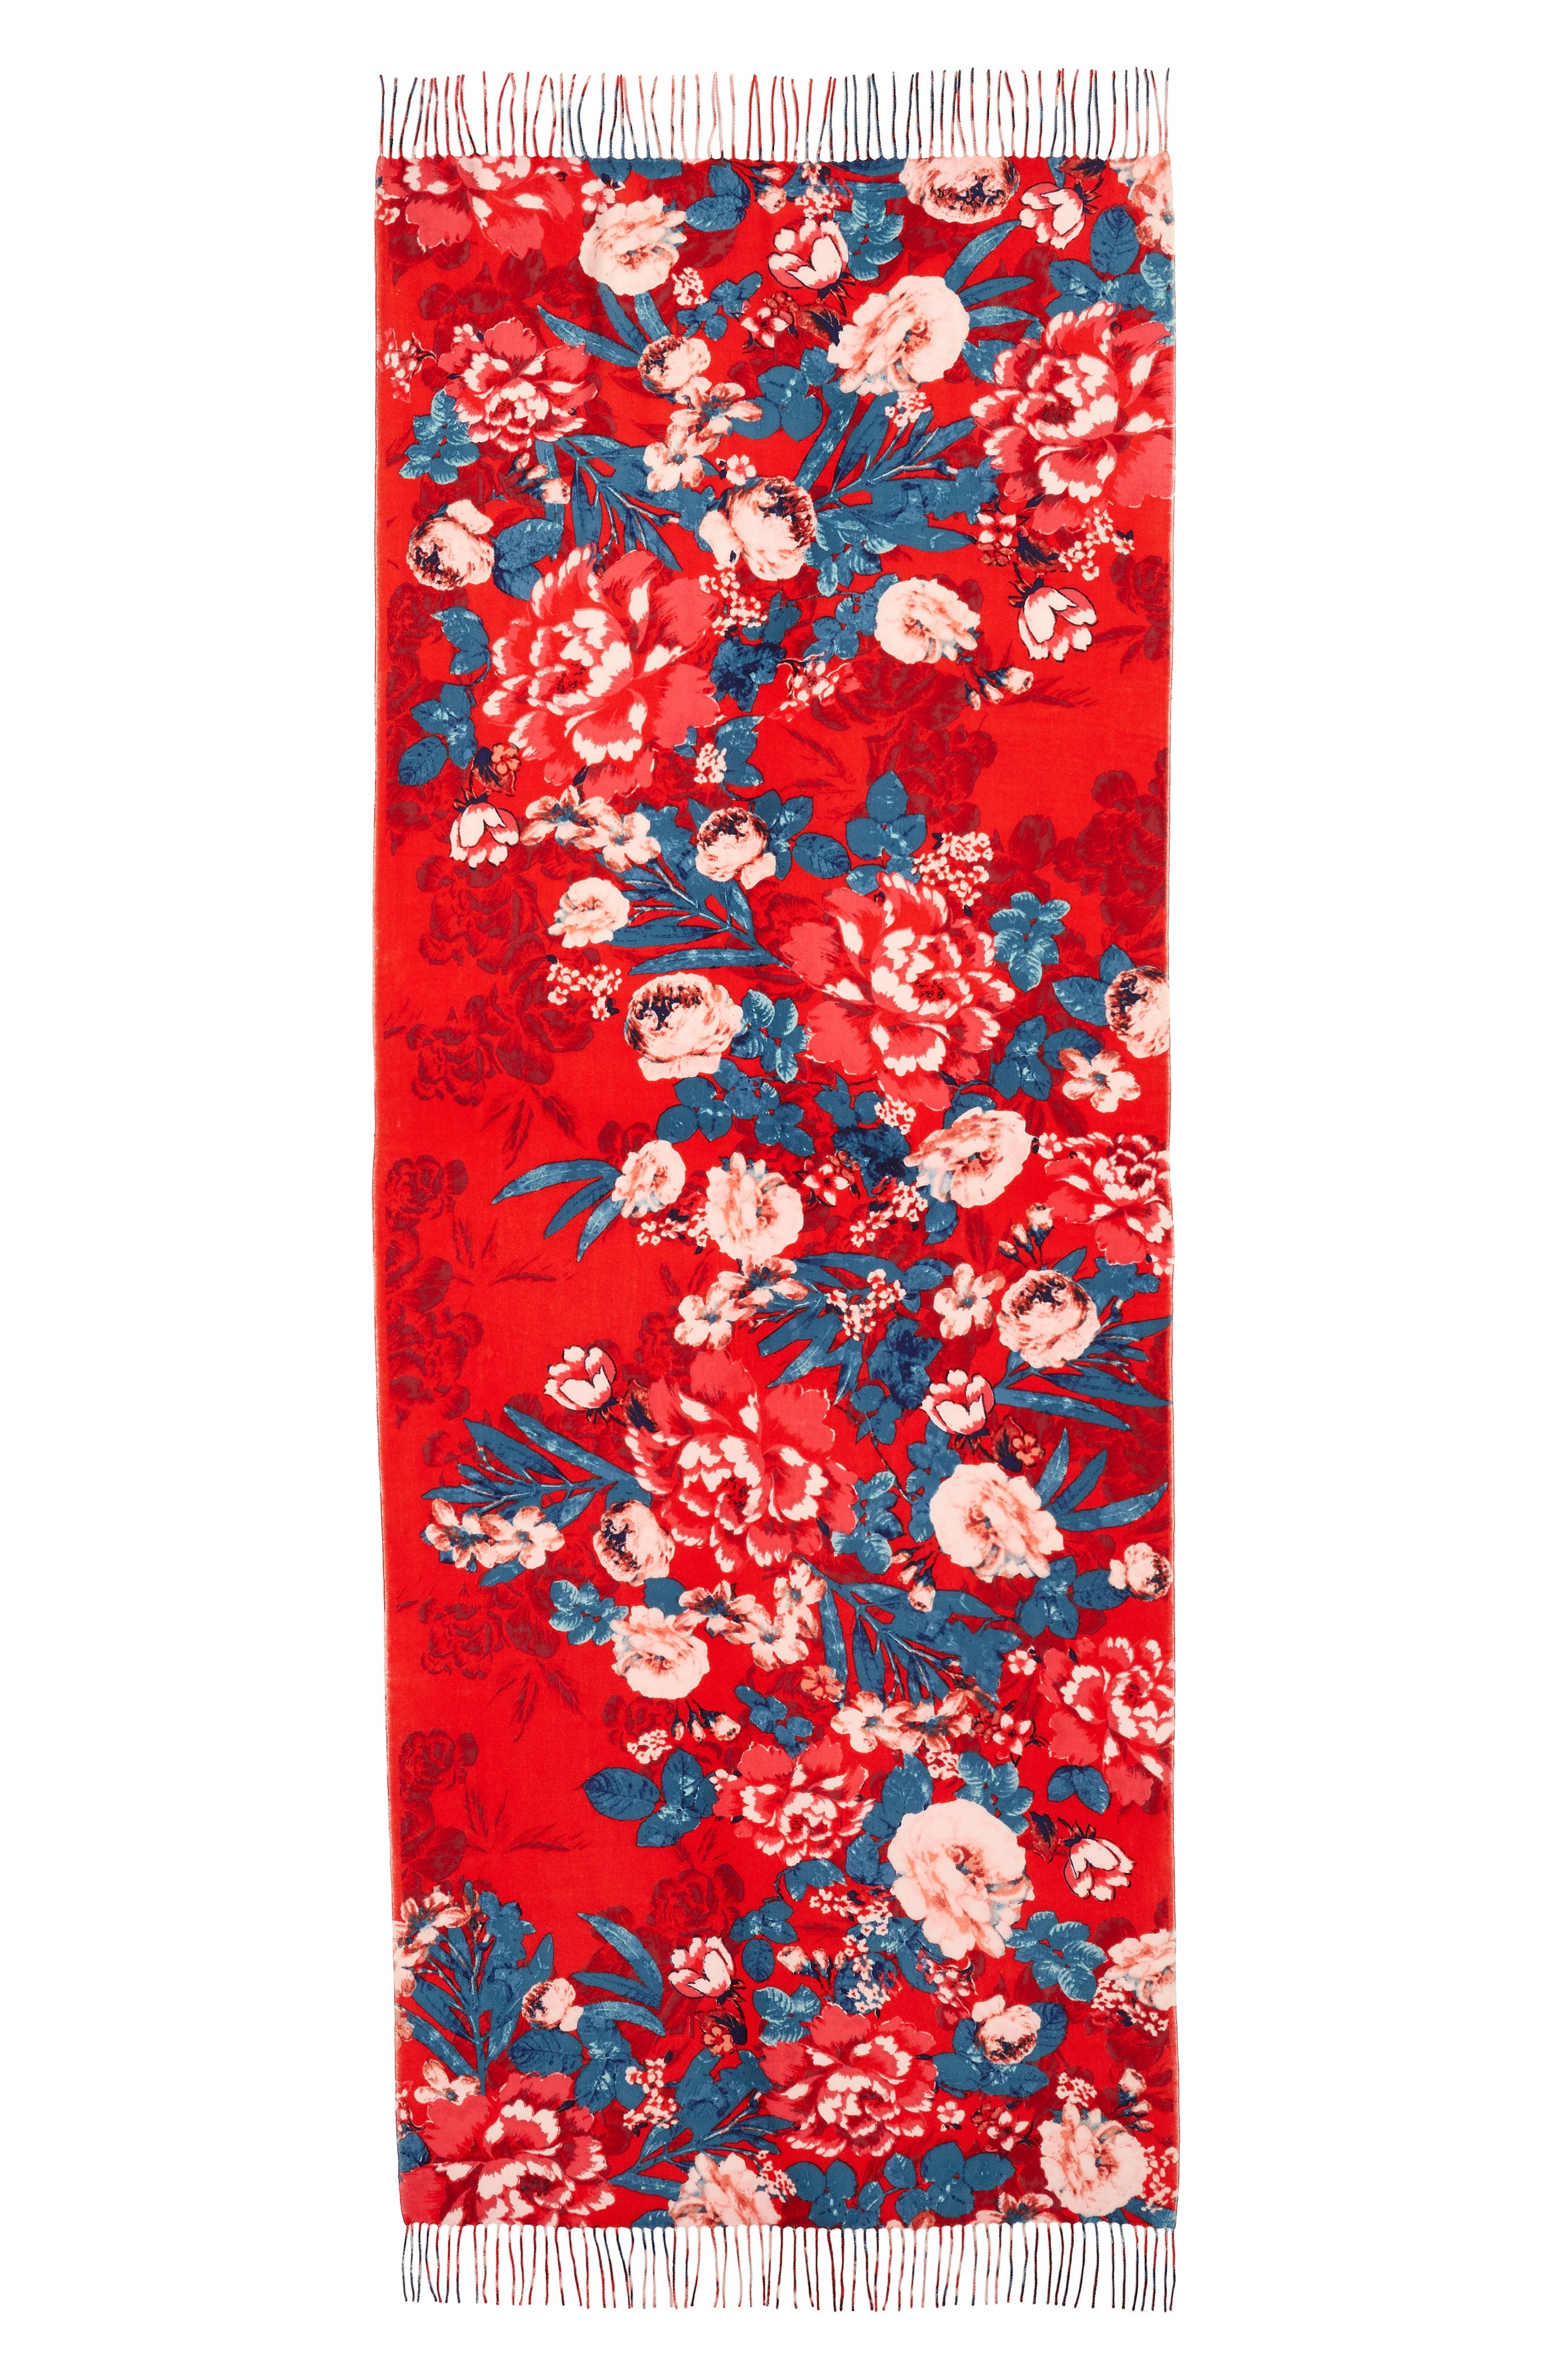 Tissue Print Wool & Cashmere Wrap Scarf,                             Alternate thumbnail 3, color,                             RED ARTFUL BLOOMS